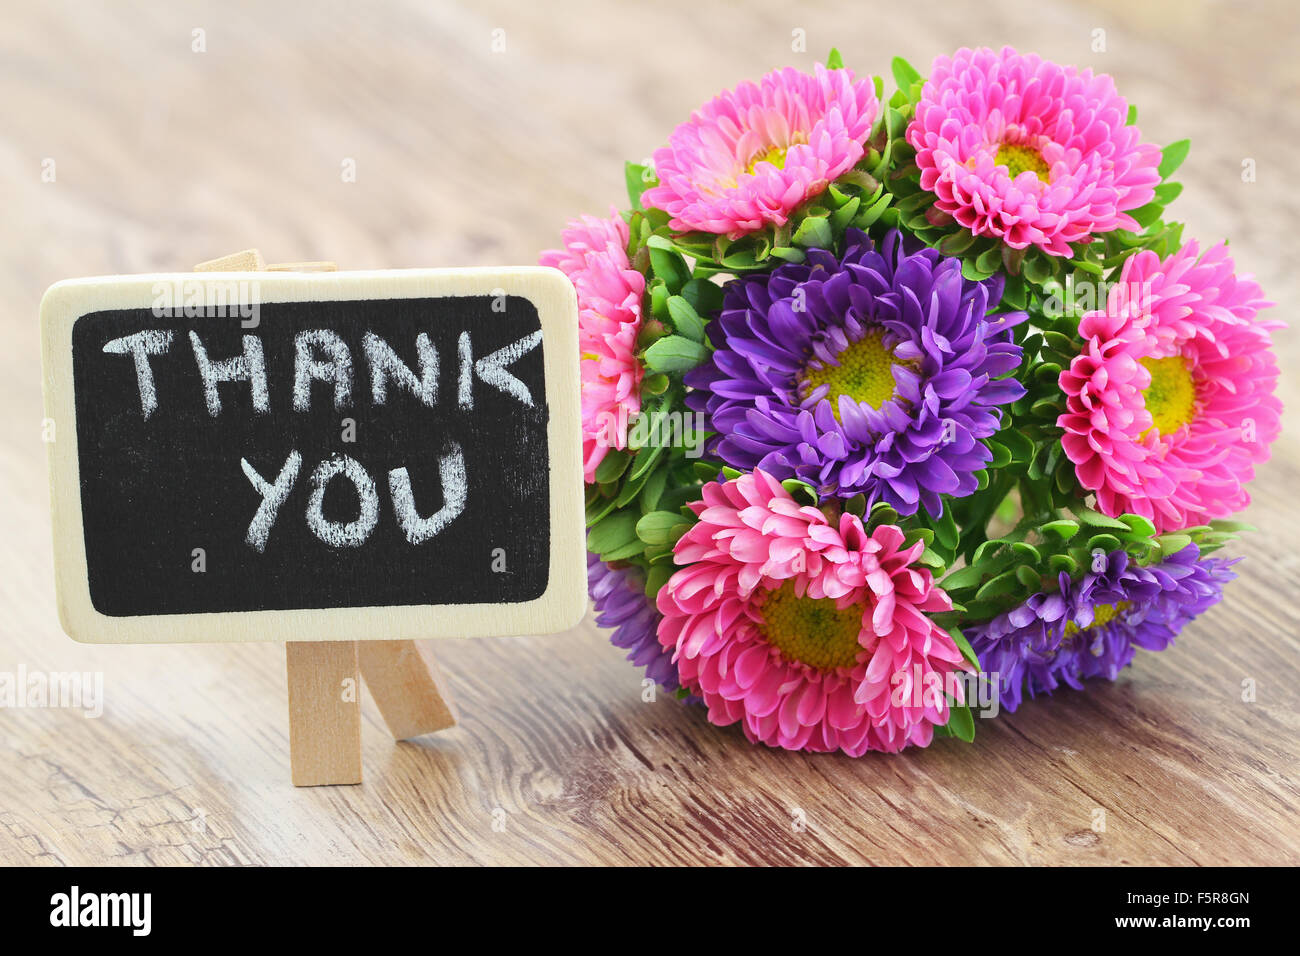 Bouquet of flowers thank you note stock photos bouquet of flowers thank you written on little blackboard with colorful aster flowers bouquet stock image izmirmasajfo